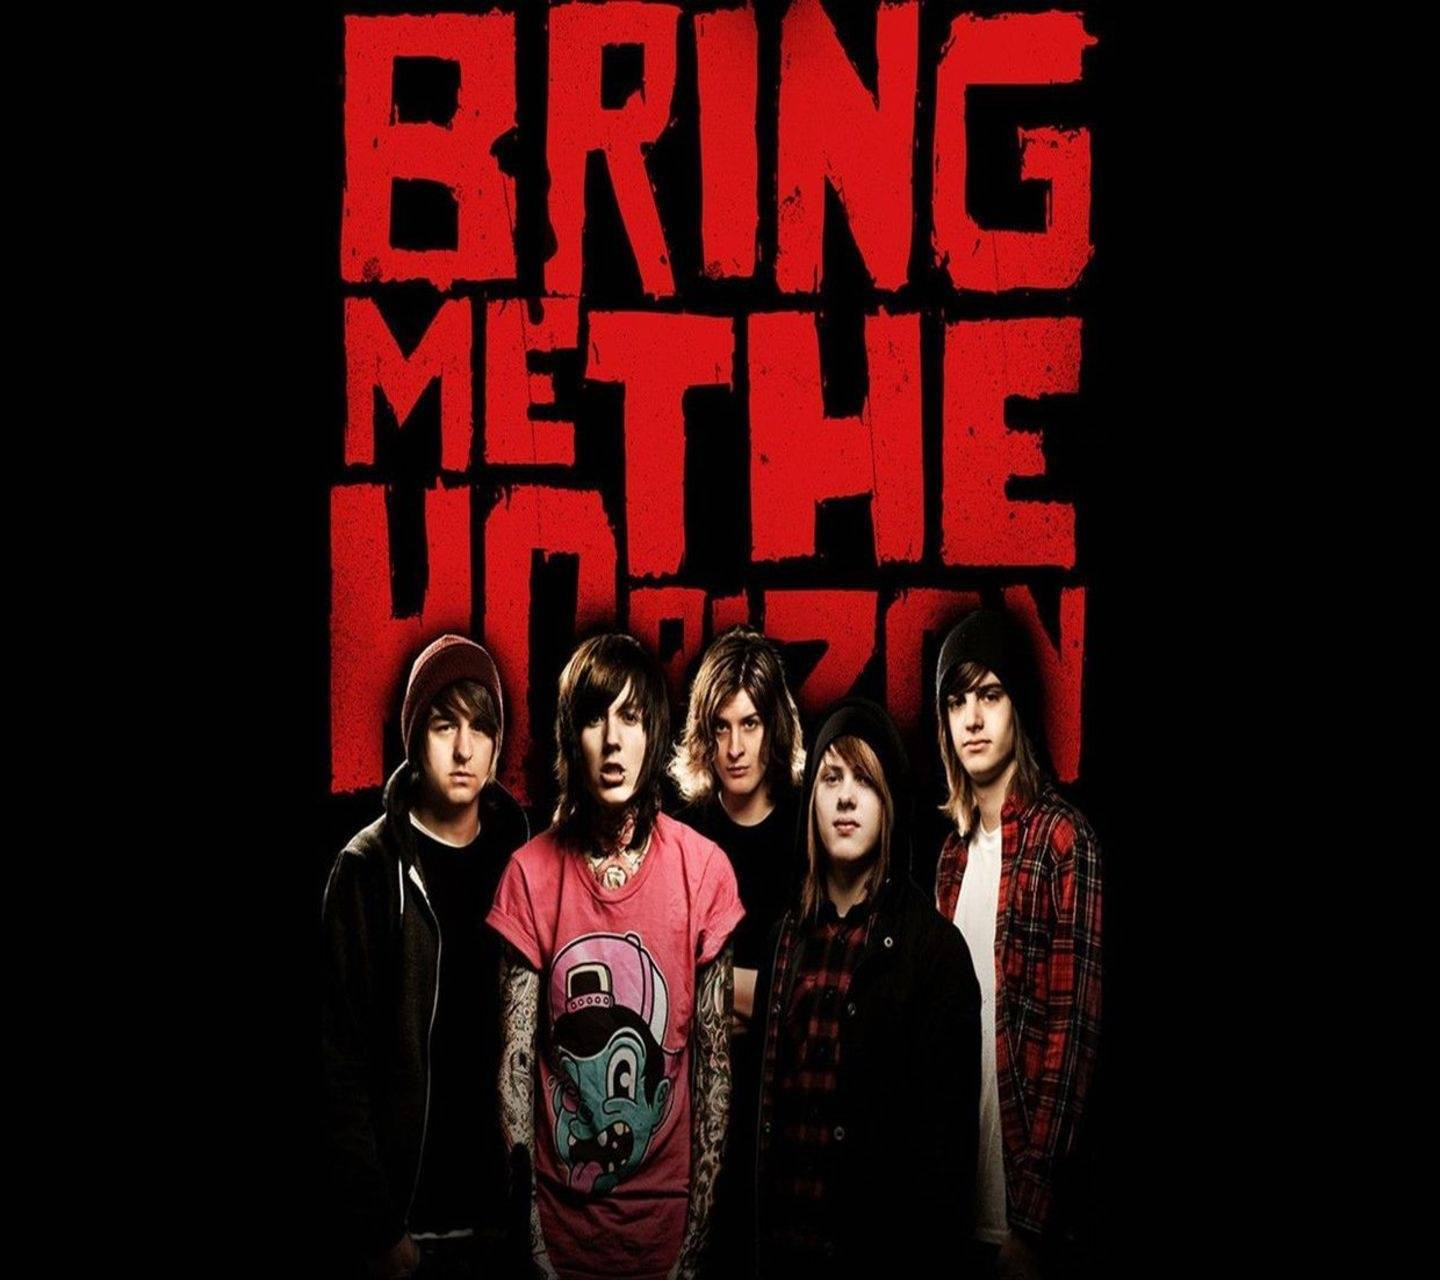 Bring Me The Horizon Wallpaper By Batgirljamie 53 Free On Zedge